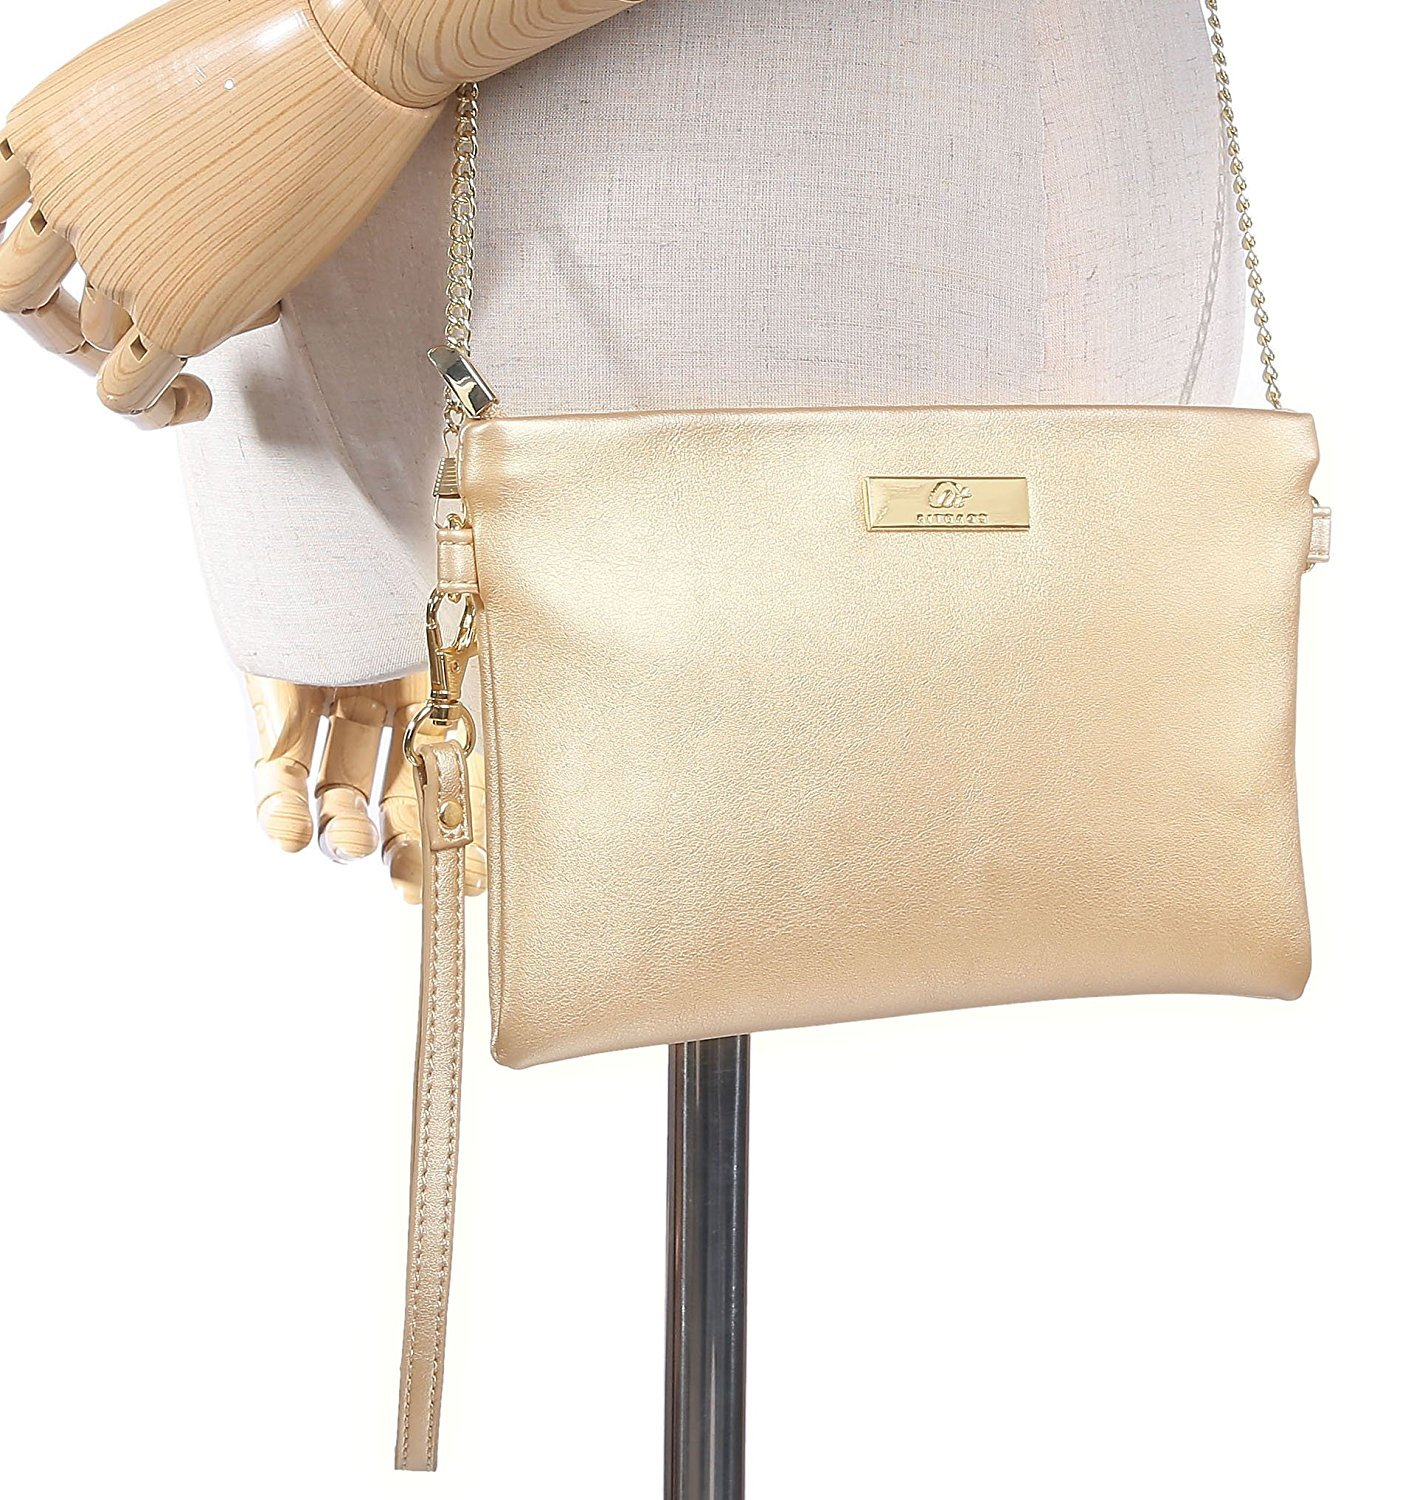 Aitbags Soft PU Leather Wristlet Clutch Crossbody Bag with Chain Strap Cell Phone Purse by Aitbags (Image #6)